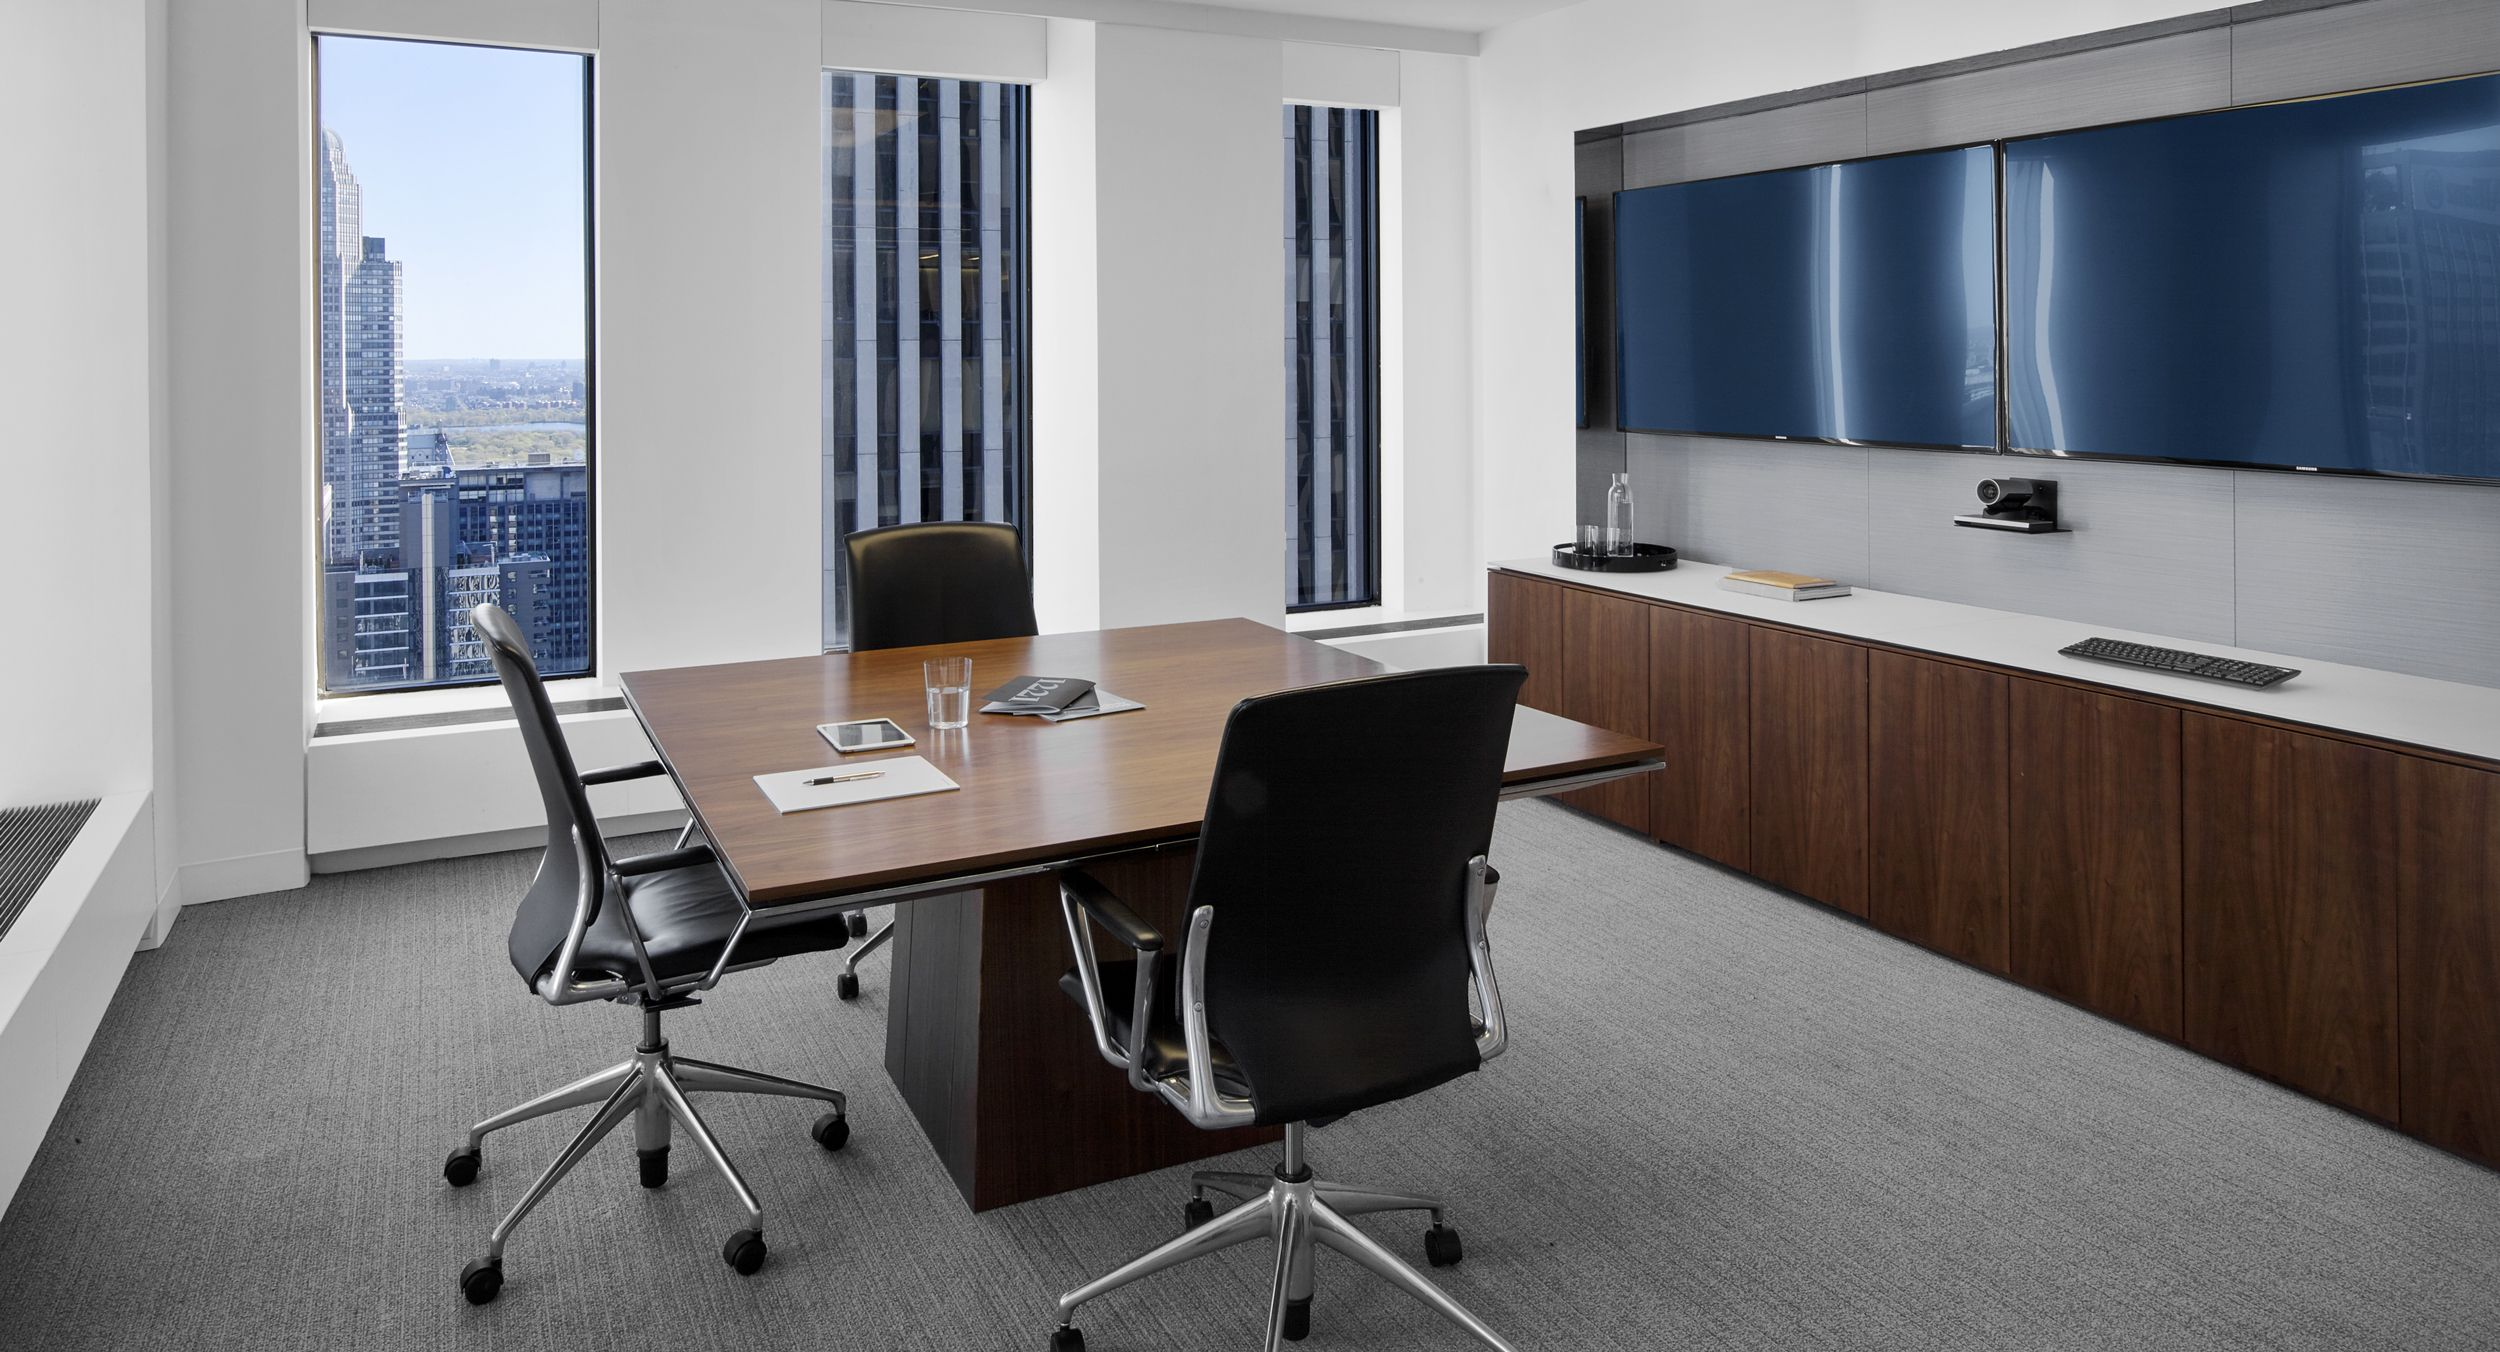 Precisely-tailored MESA tables and storage credenzas meet the exacting needs of each meeting space.